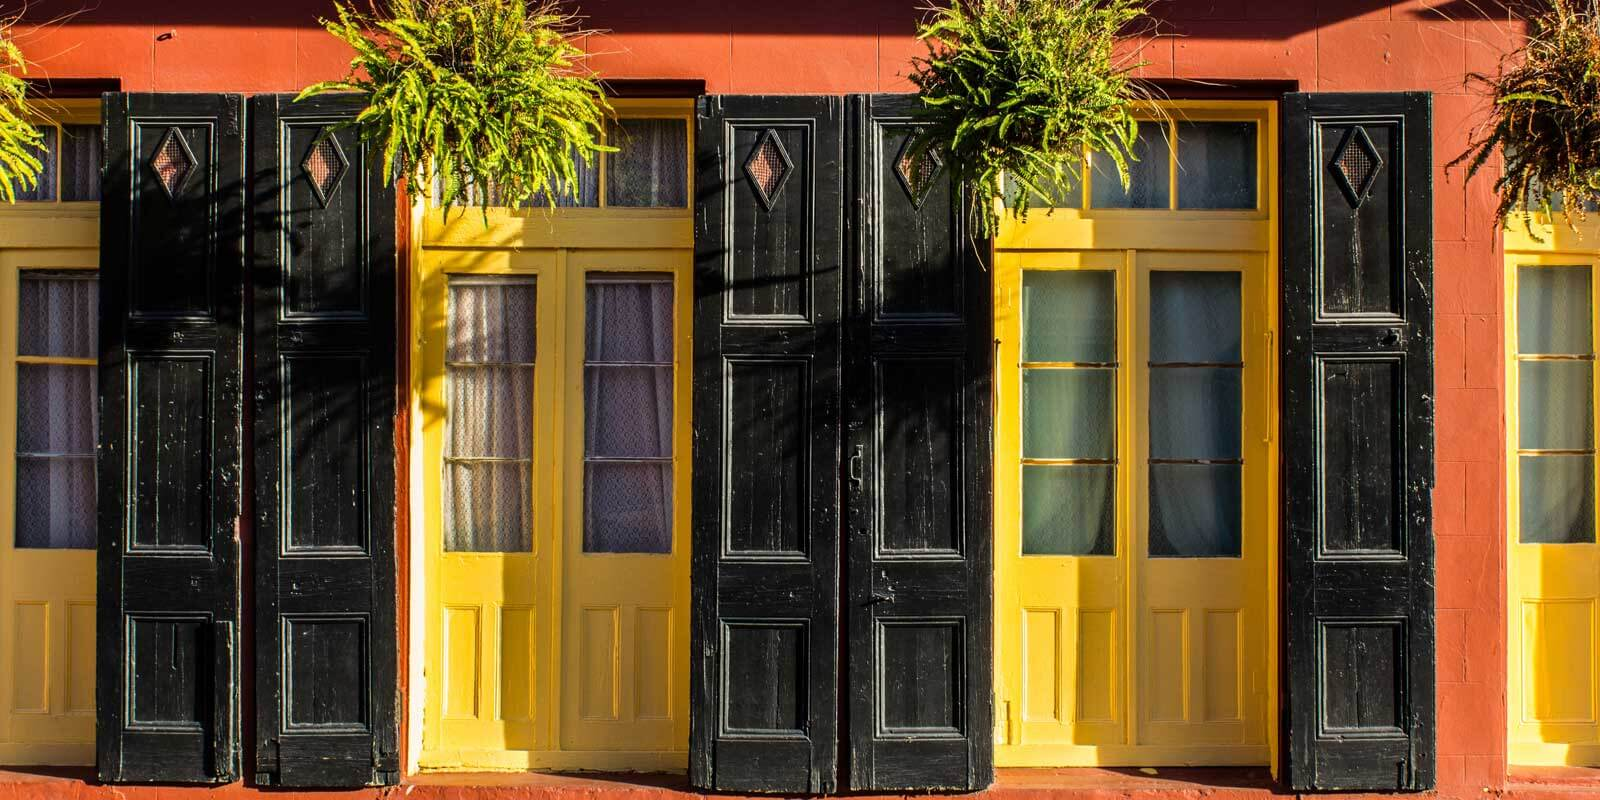 The best places to stay in new orleans frost sun new orleans french quarter close up of an orange building with bright yellow doors black shutters and lush rubansaba